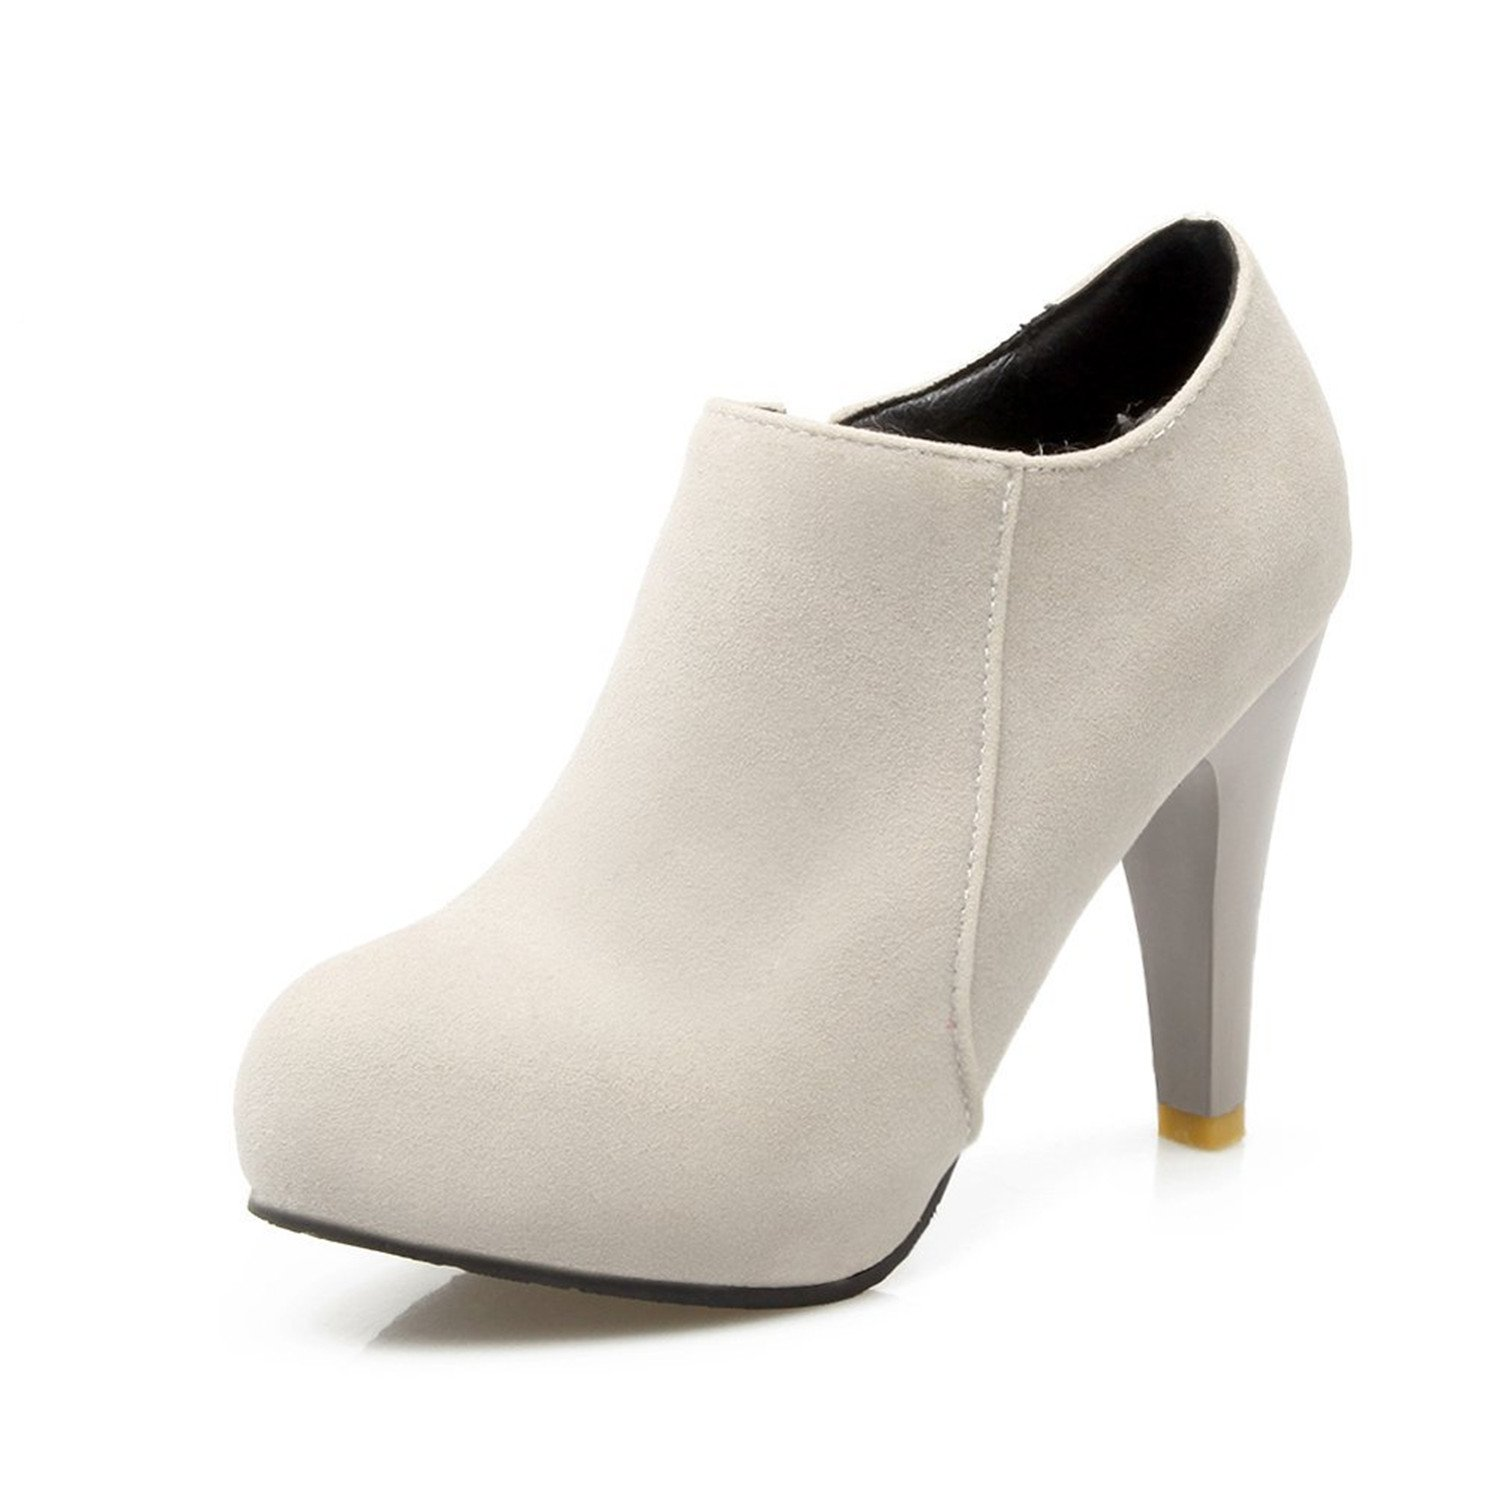 Zalezing Womens Round Toe Toe Round High Heel Ankle Boots B06VT56HSW Boots fba64a